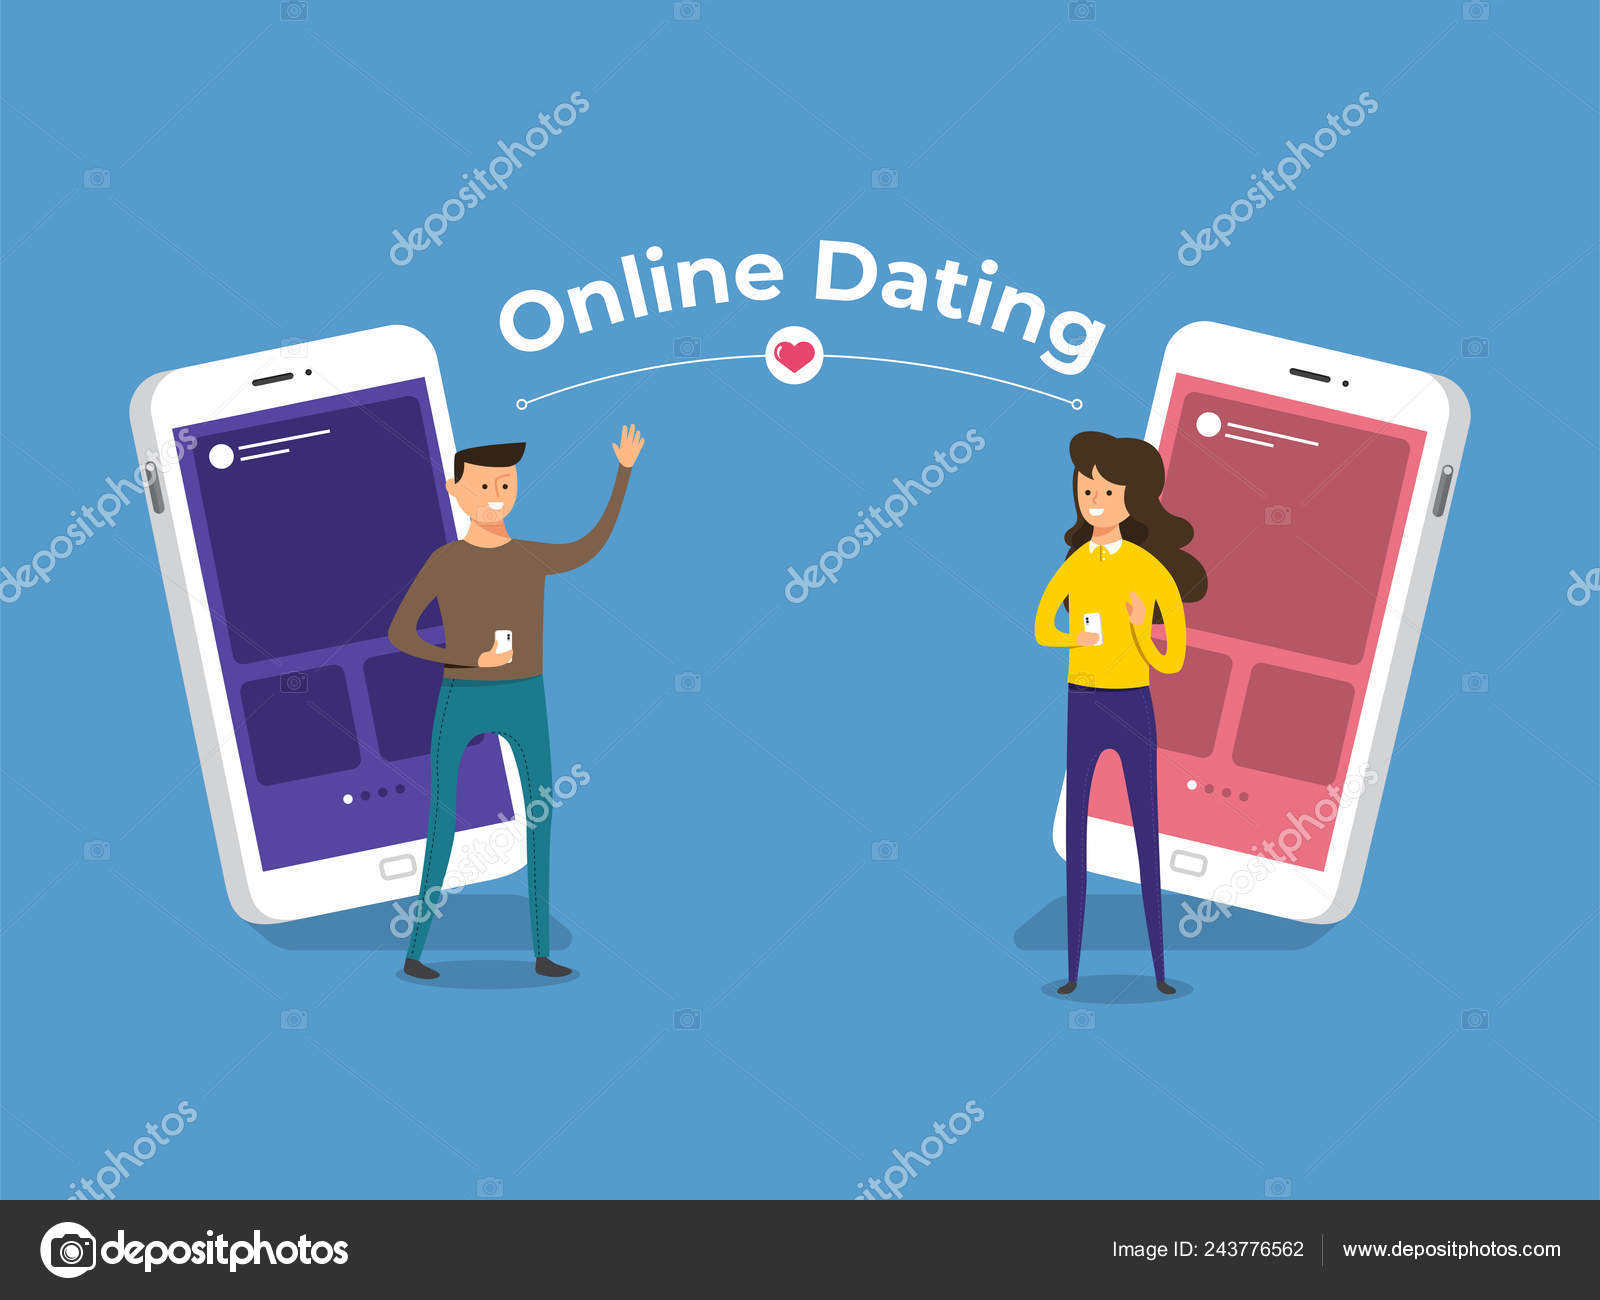 mobil chat dating